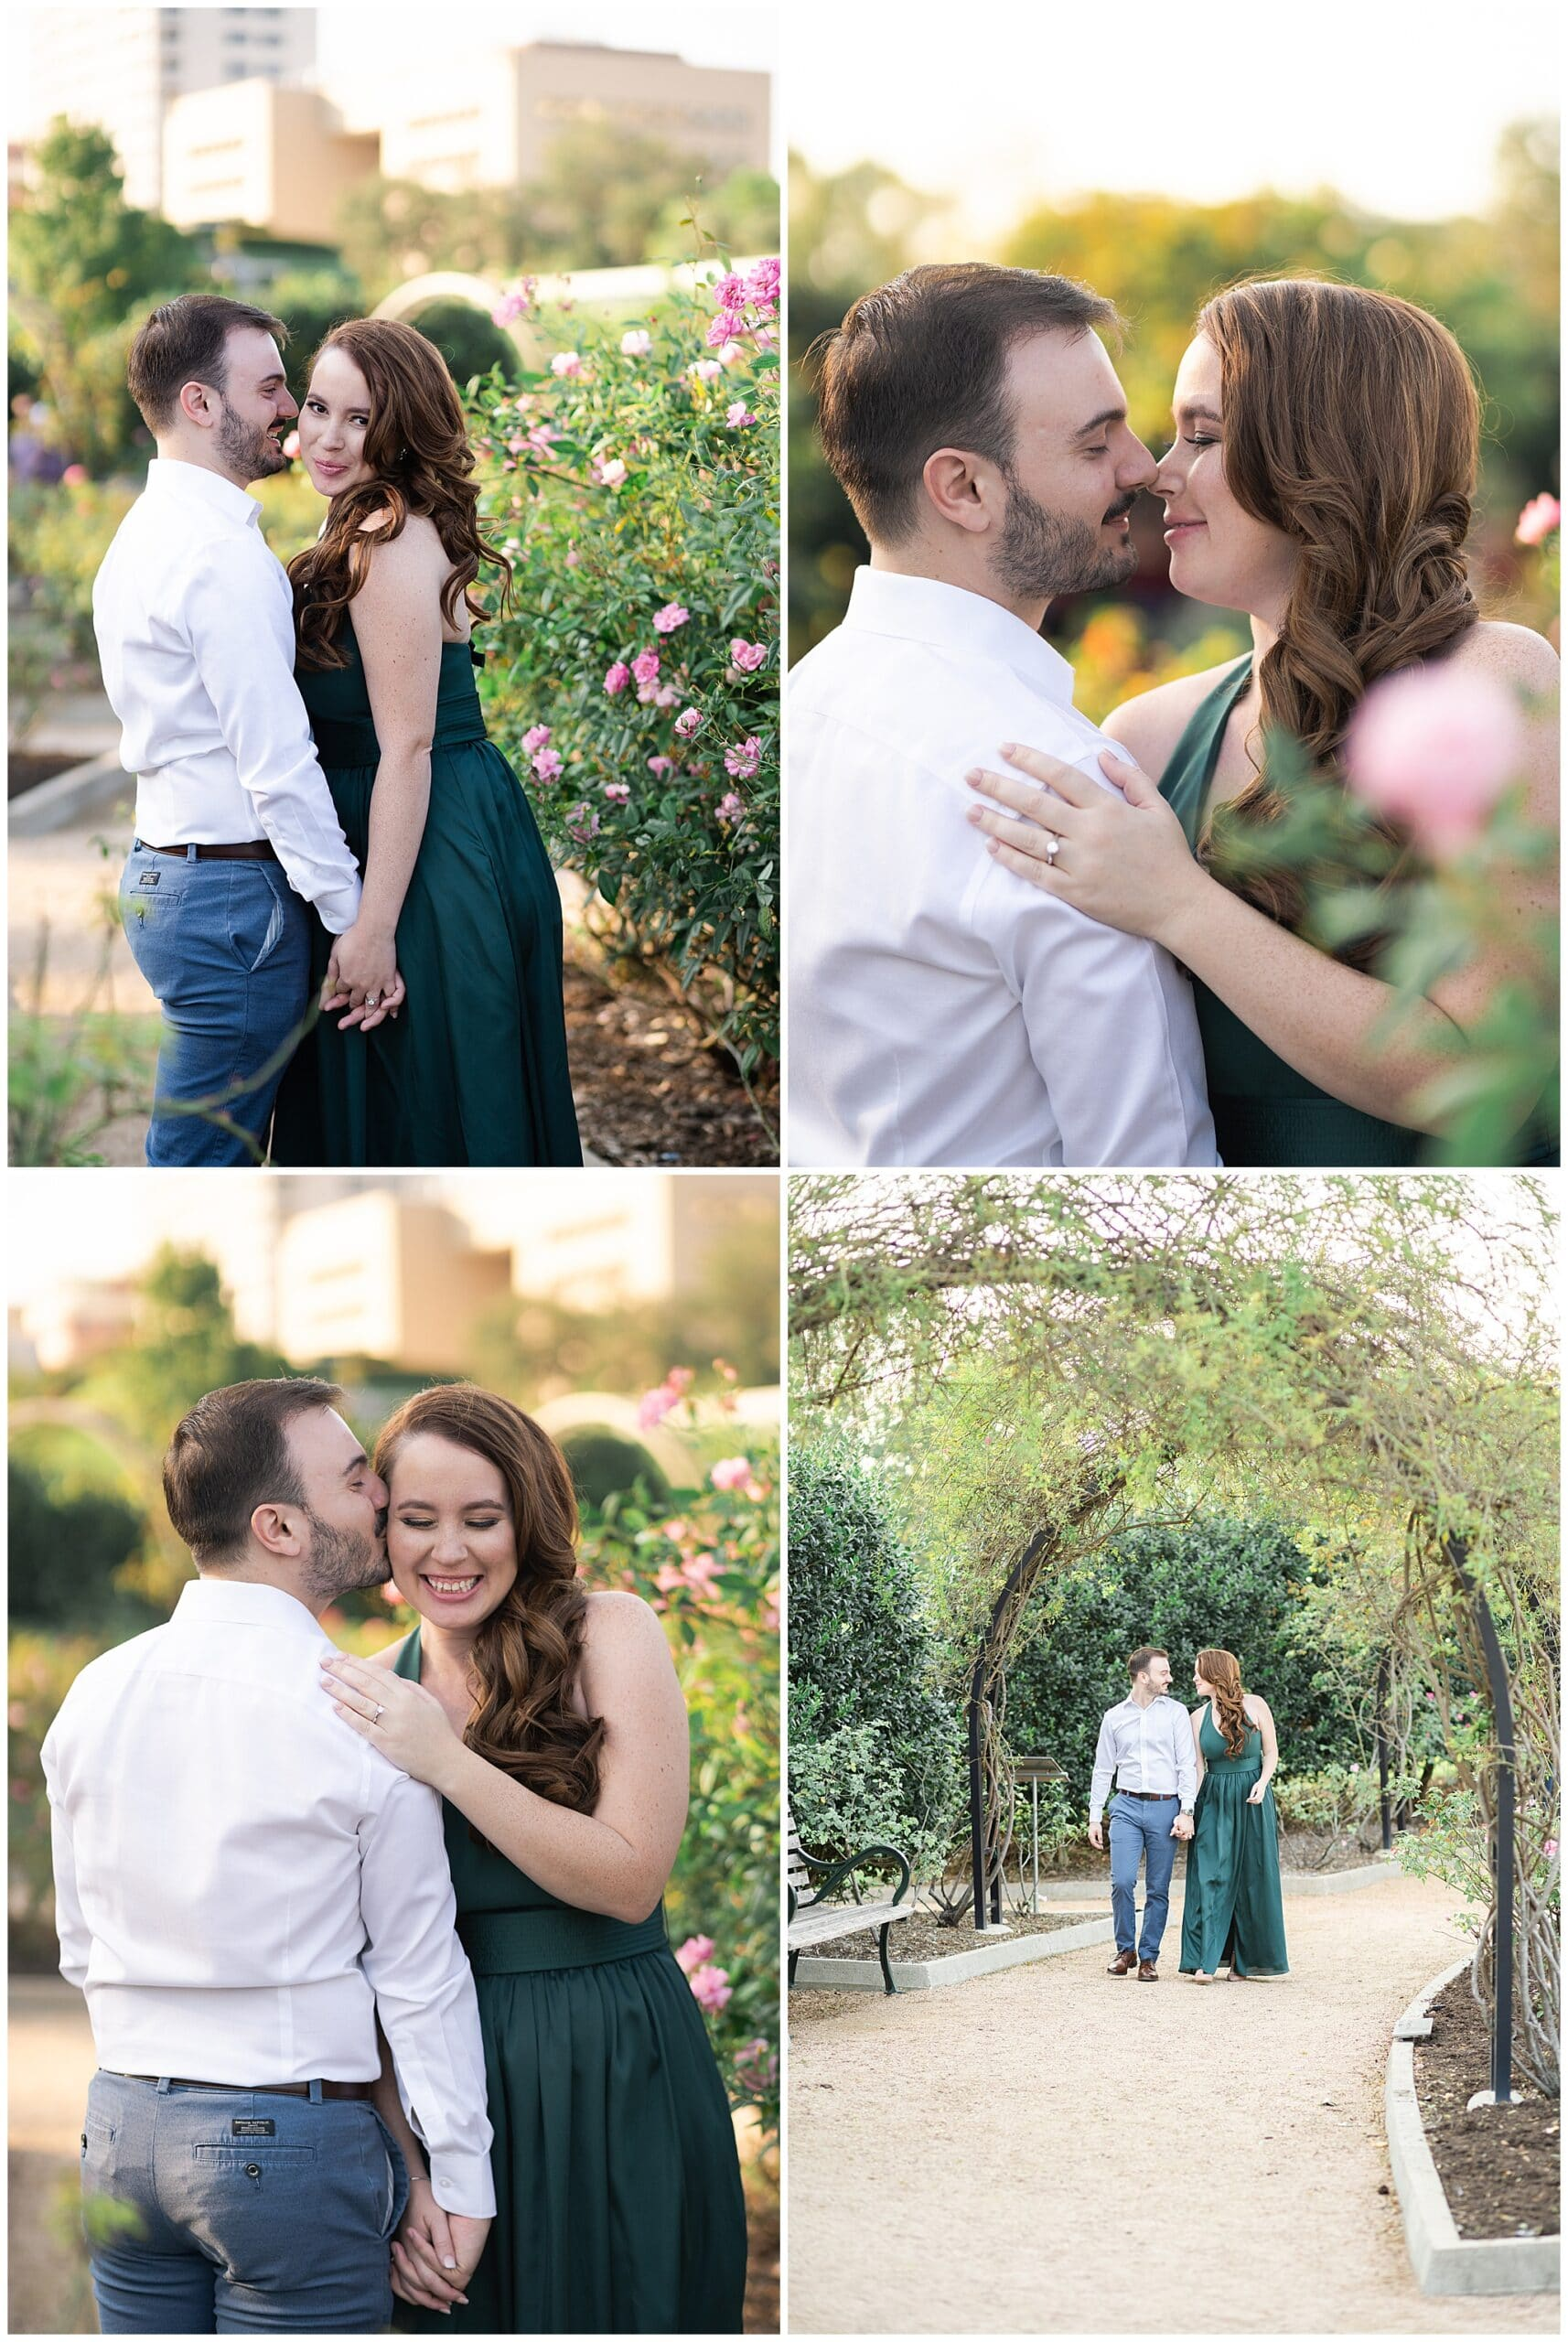 engaged couple kiss during their engagement session at McGovern Centennial Gardens in Houston Texas captured by Swish and Click Photography